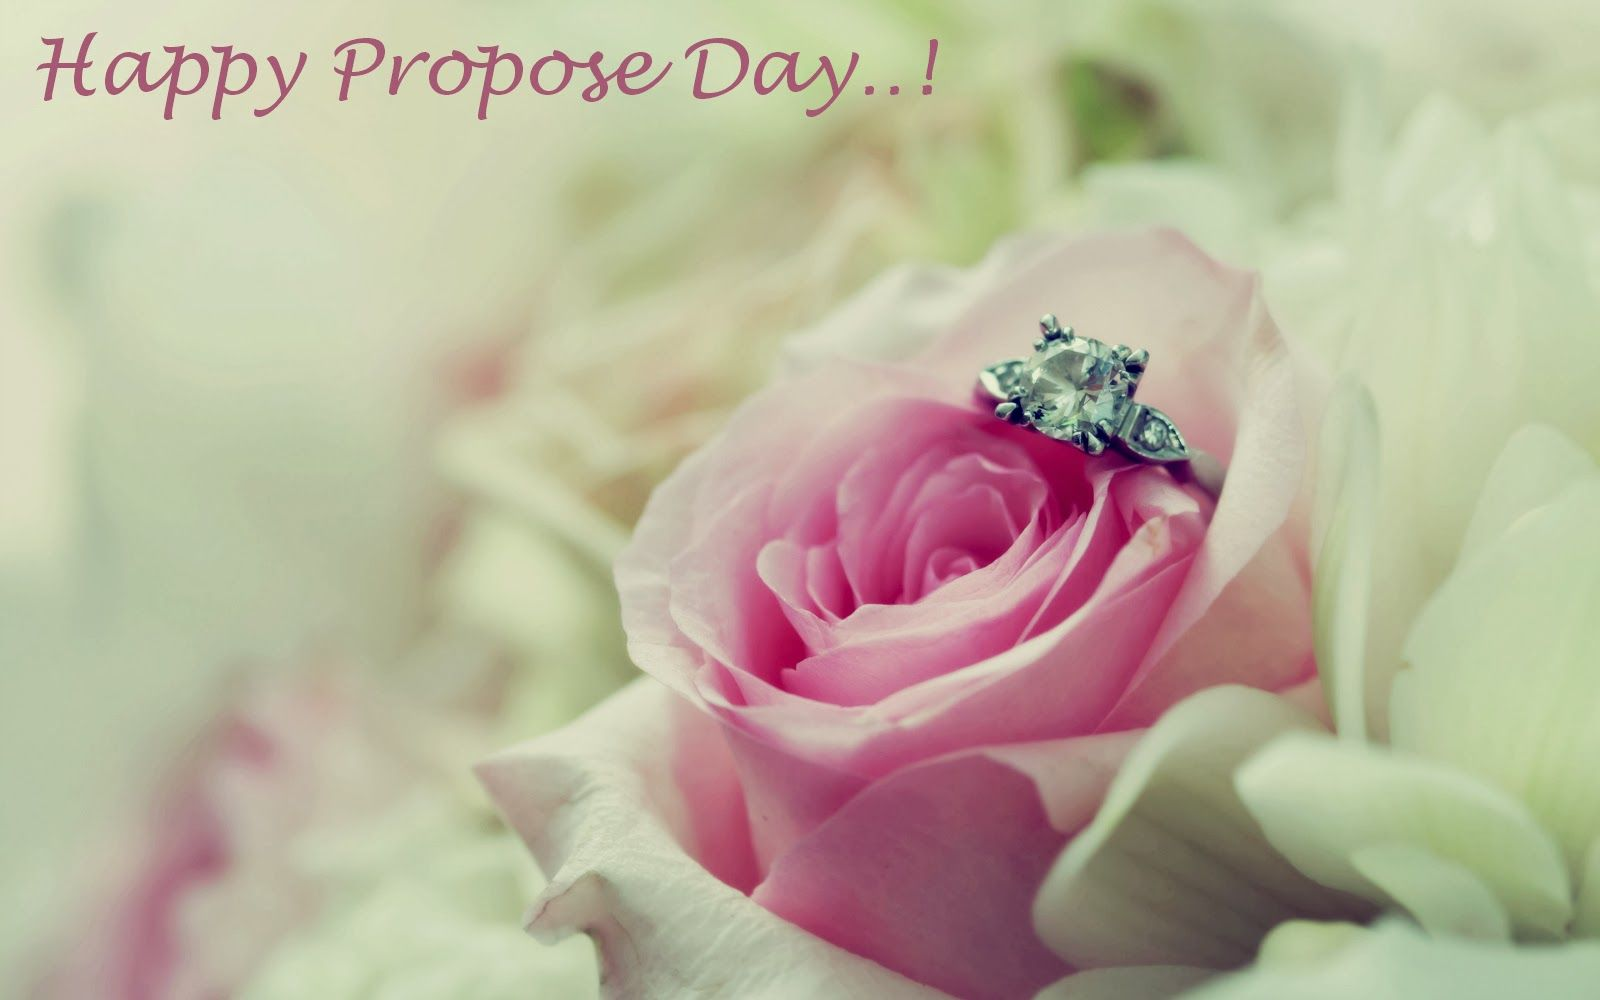 Propose Day 2016 Wallpapers and Proposal image